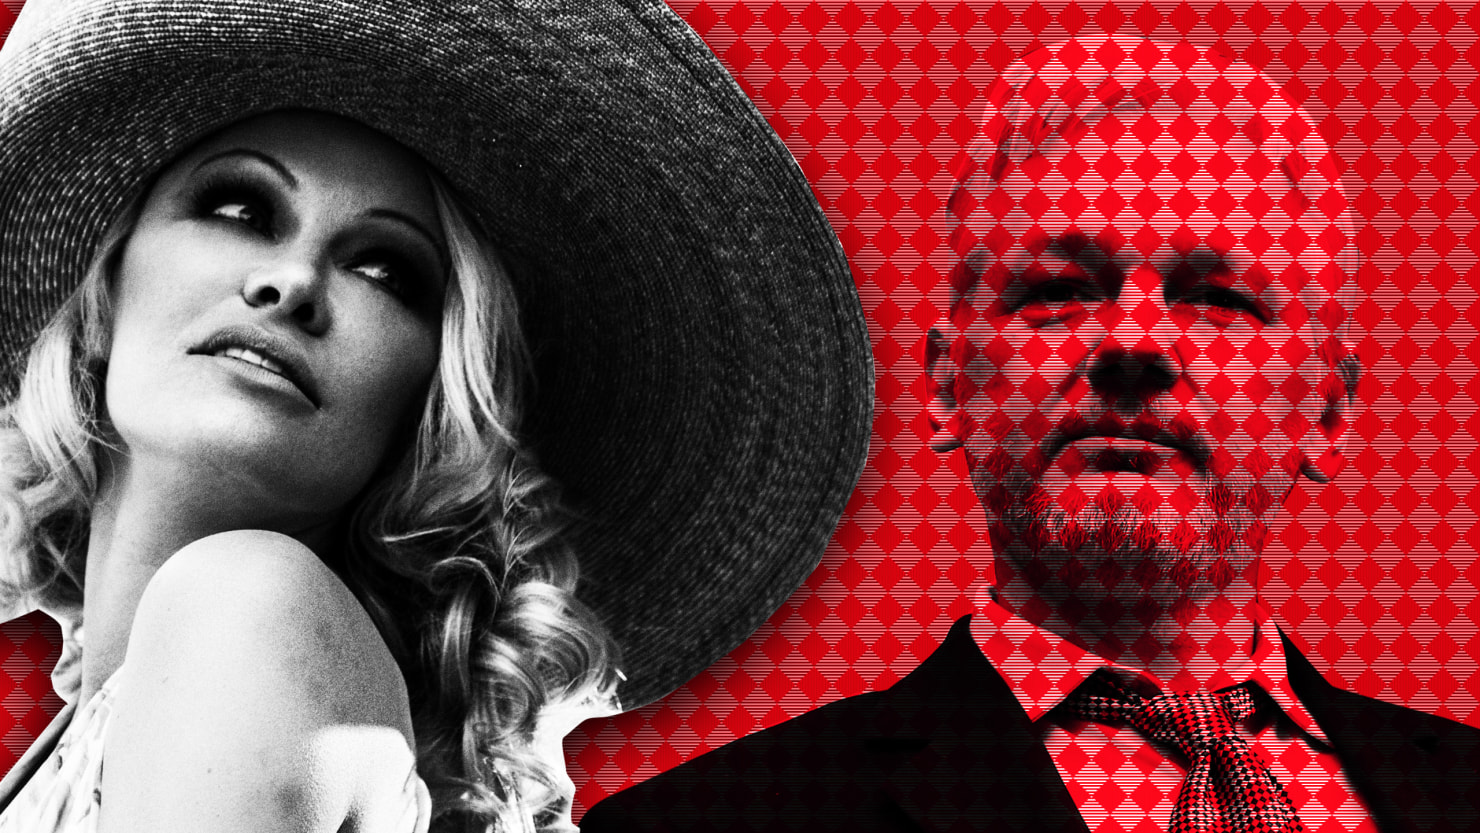 Pamela Anderson: My Open Letter to Australian PM Scott Morrison on Julian Assange